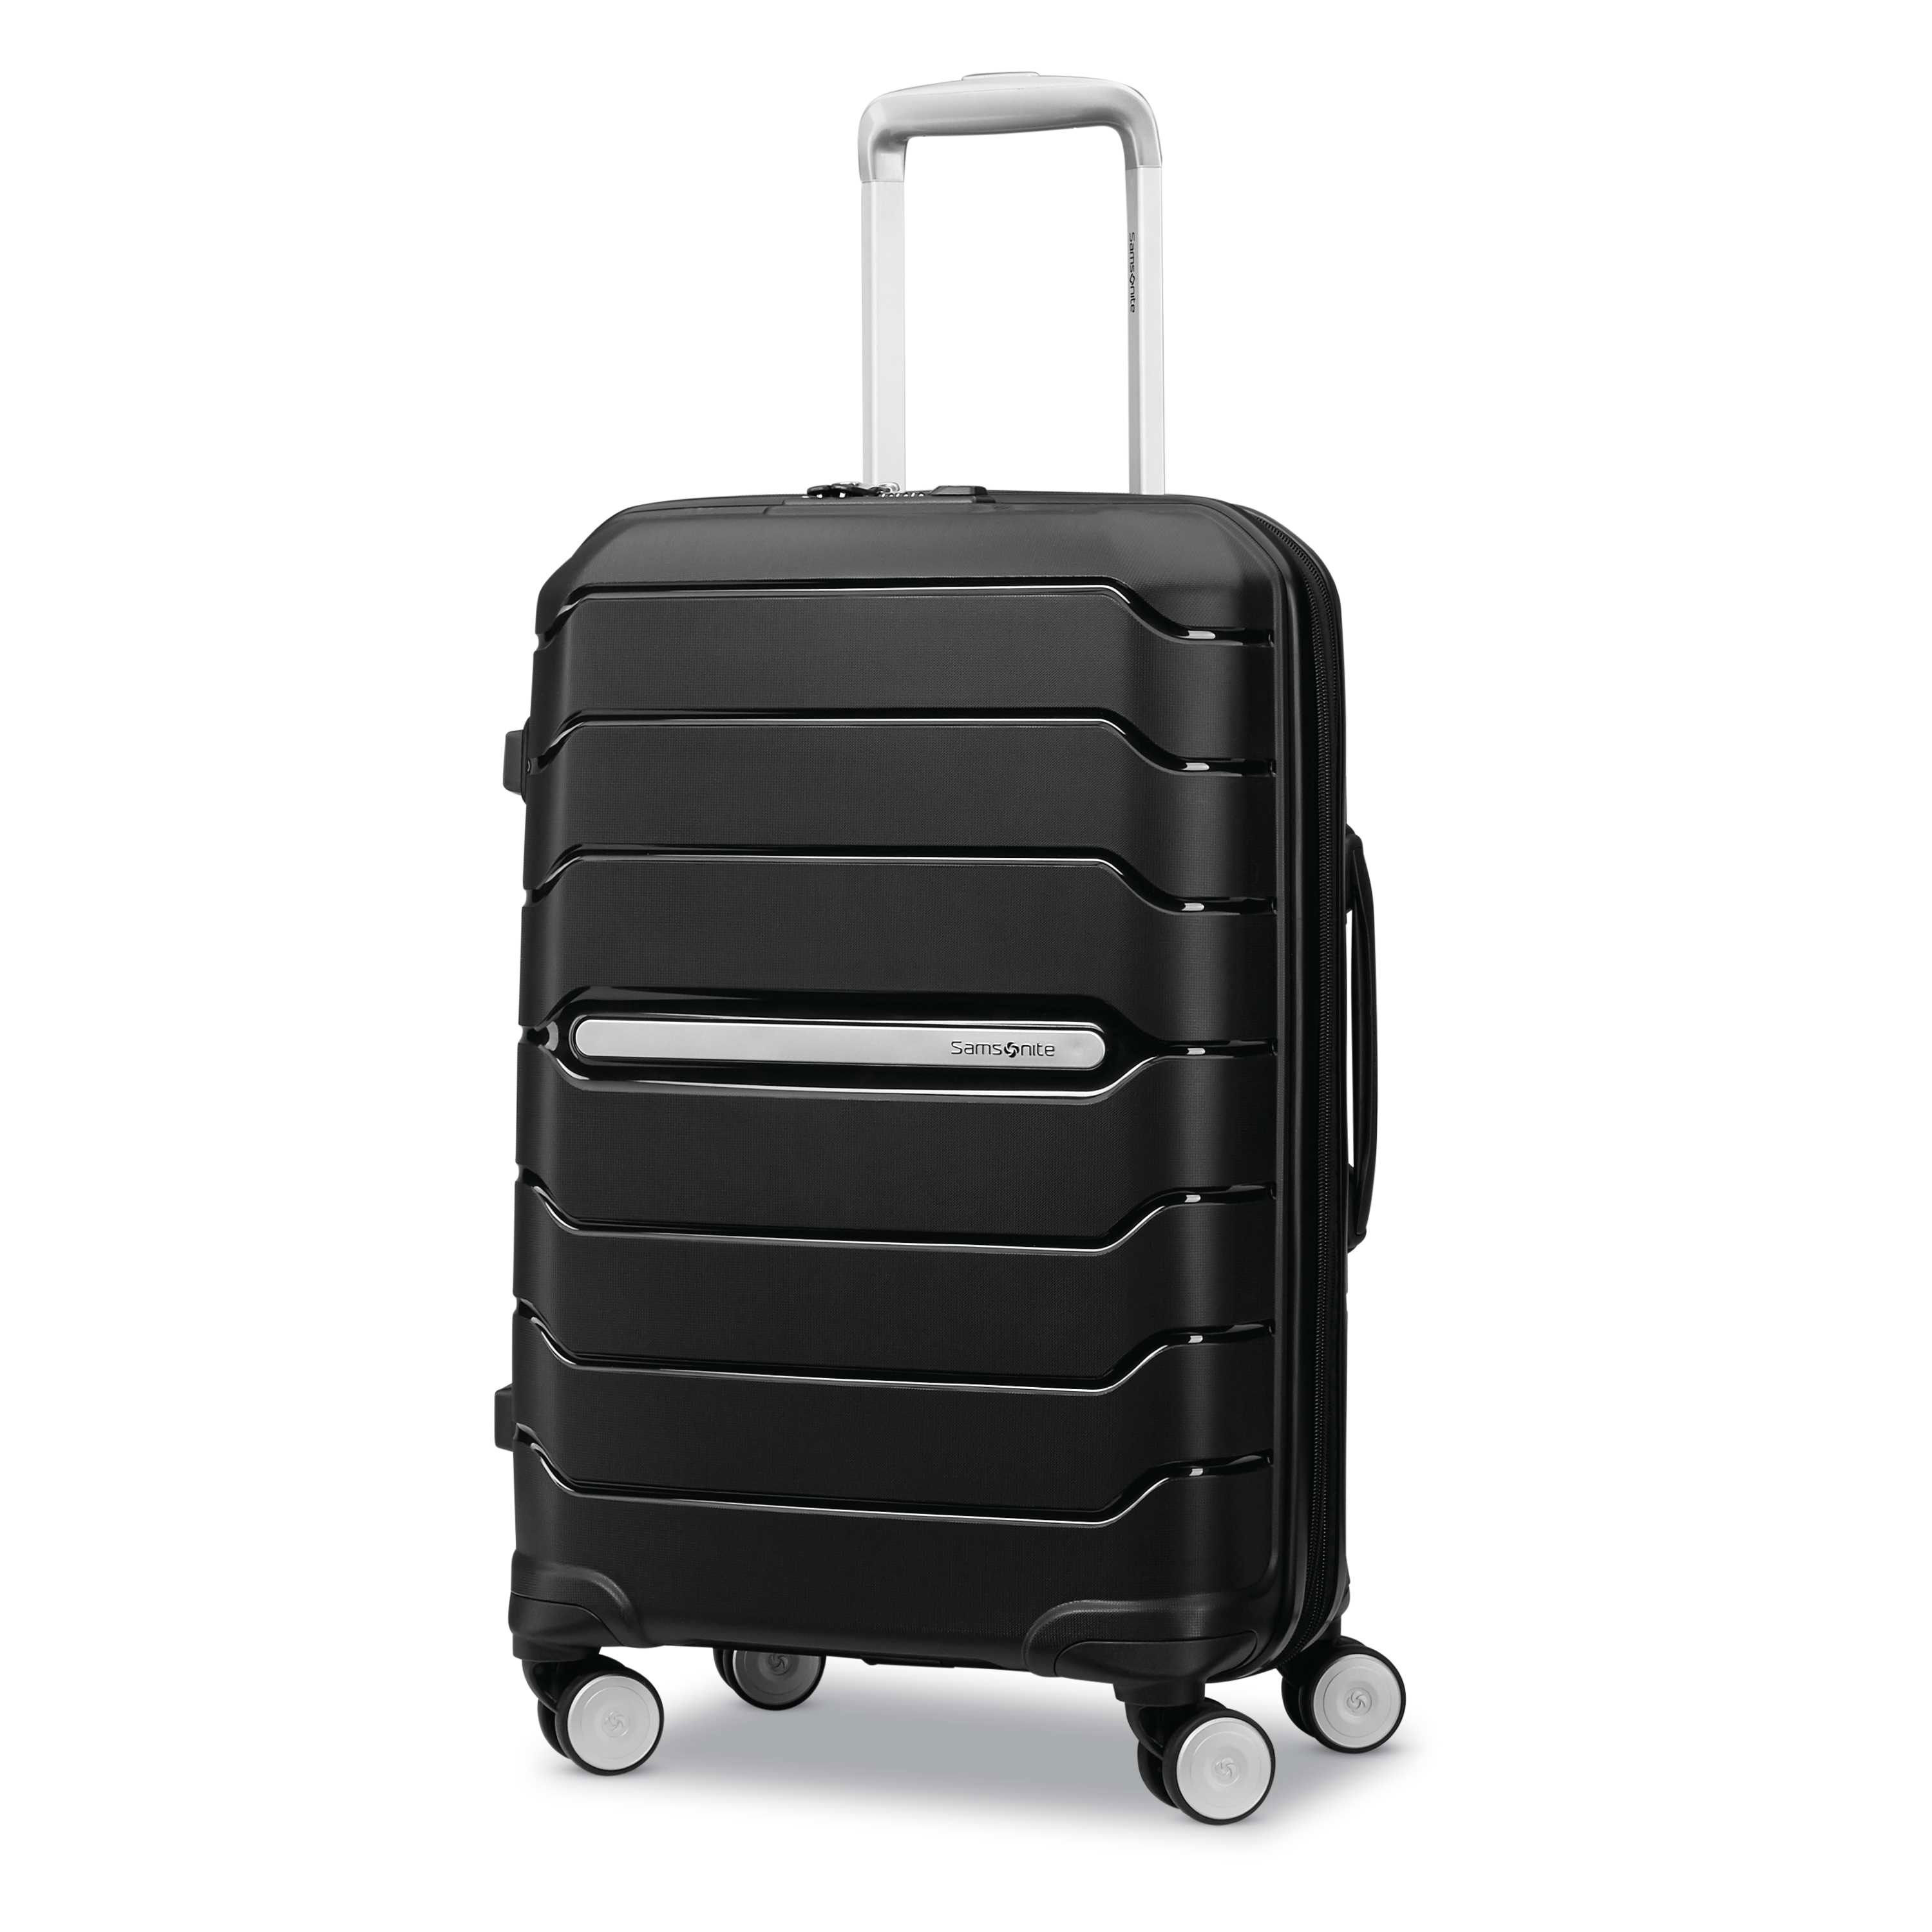 Samsonite Freeform Hardside Expandable with Double Spinner Wheels Black